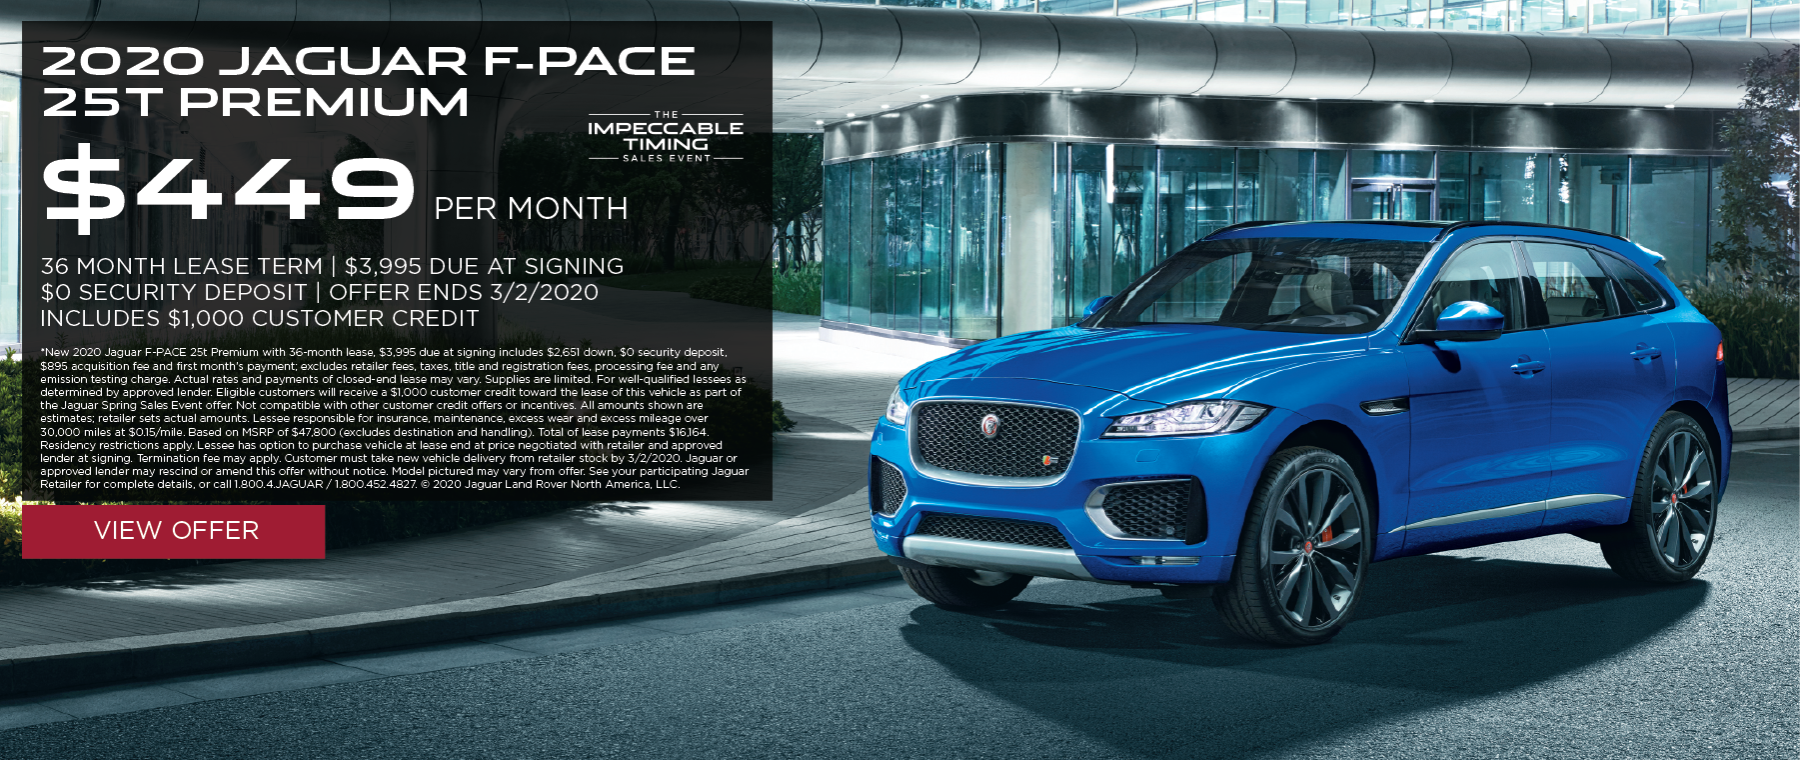 2020 JAGUAR F-PACE 25T PREMIUM PARKED ON CITY STREET. $449 PER MONTH. 36 MONTH LEASE TERM. $3,995 CASH DUE AT SIGNING. INCLUDES $1,000 CUSTOMER CREDIT.  $0 SECURITY DEPOSIT. 10,000 MILES PER YEAR. OFFER ENDS 3/2/2020. THE IMPECCABLE TIMING SALES EVENT.